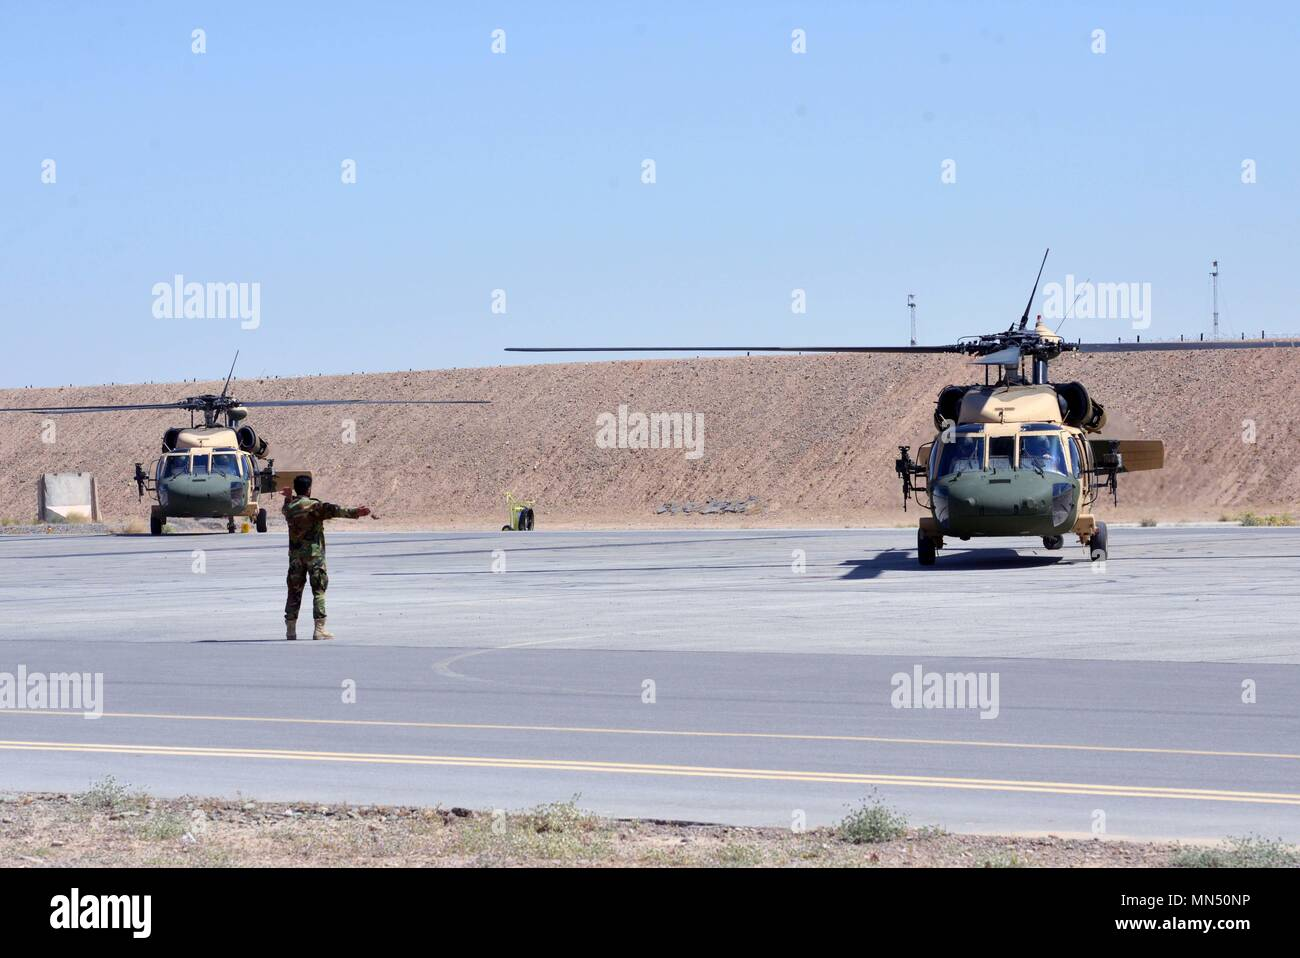 An Afghan Air Force member directs two UH-60 Blackhawks as they prepare to take off for the first Afghan-led operational mission on this aircraft May 8, 2018, Kandahar Air Field, Afghanistan.  The mission, which was in support of the elections, occurred just one day after the crews graduated from Mission Qualification Training. (U.S. Air Force photo/1st Lt. Erin Recanzone) - Stock Image